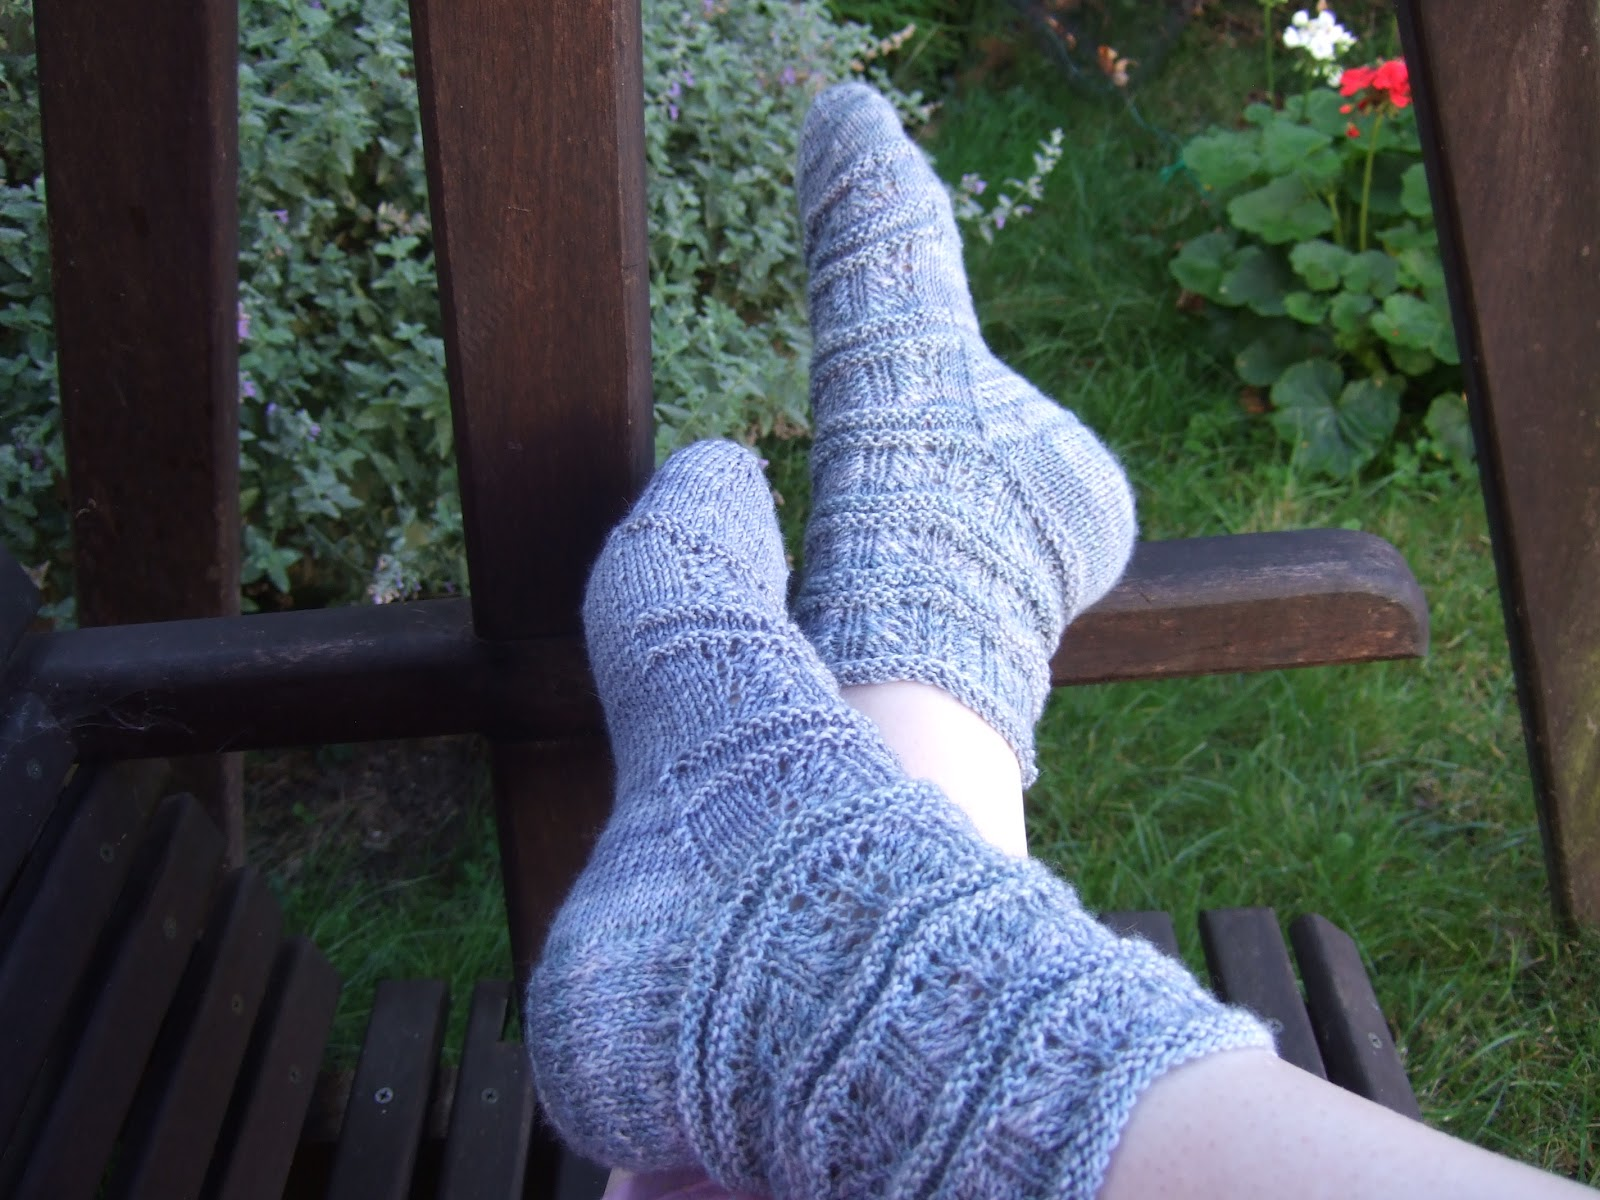 Knitted Socks East and West has ratings and 13 reviews. Lauren said: For the passionate sock knitter, this book is a must. It contains beautiful patt 4/5(13).